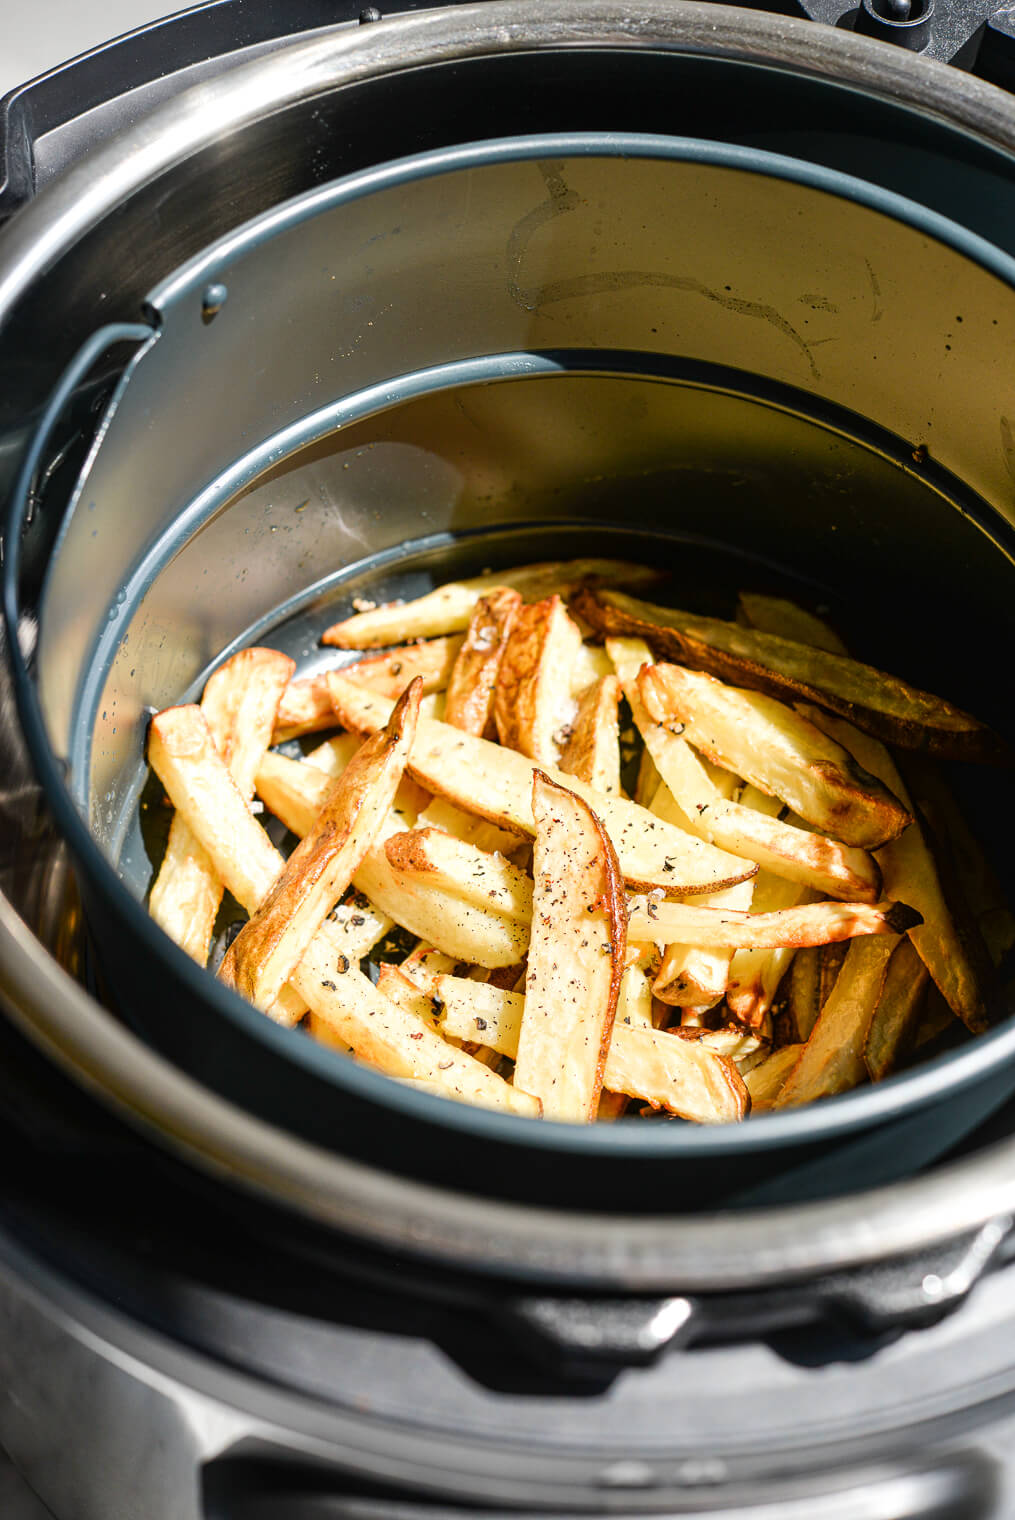 crispy french fries in an air fryer basket